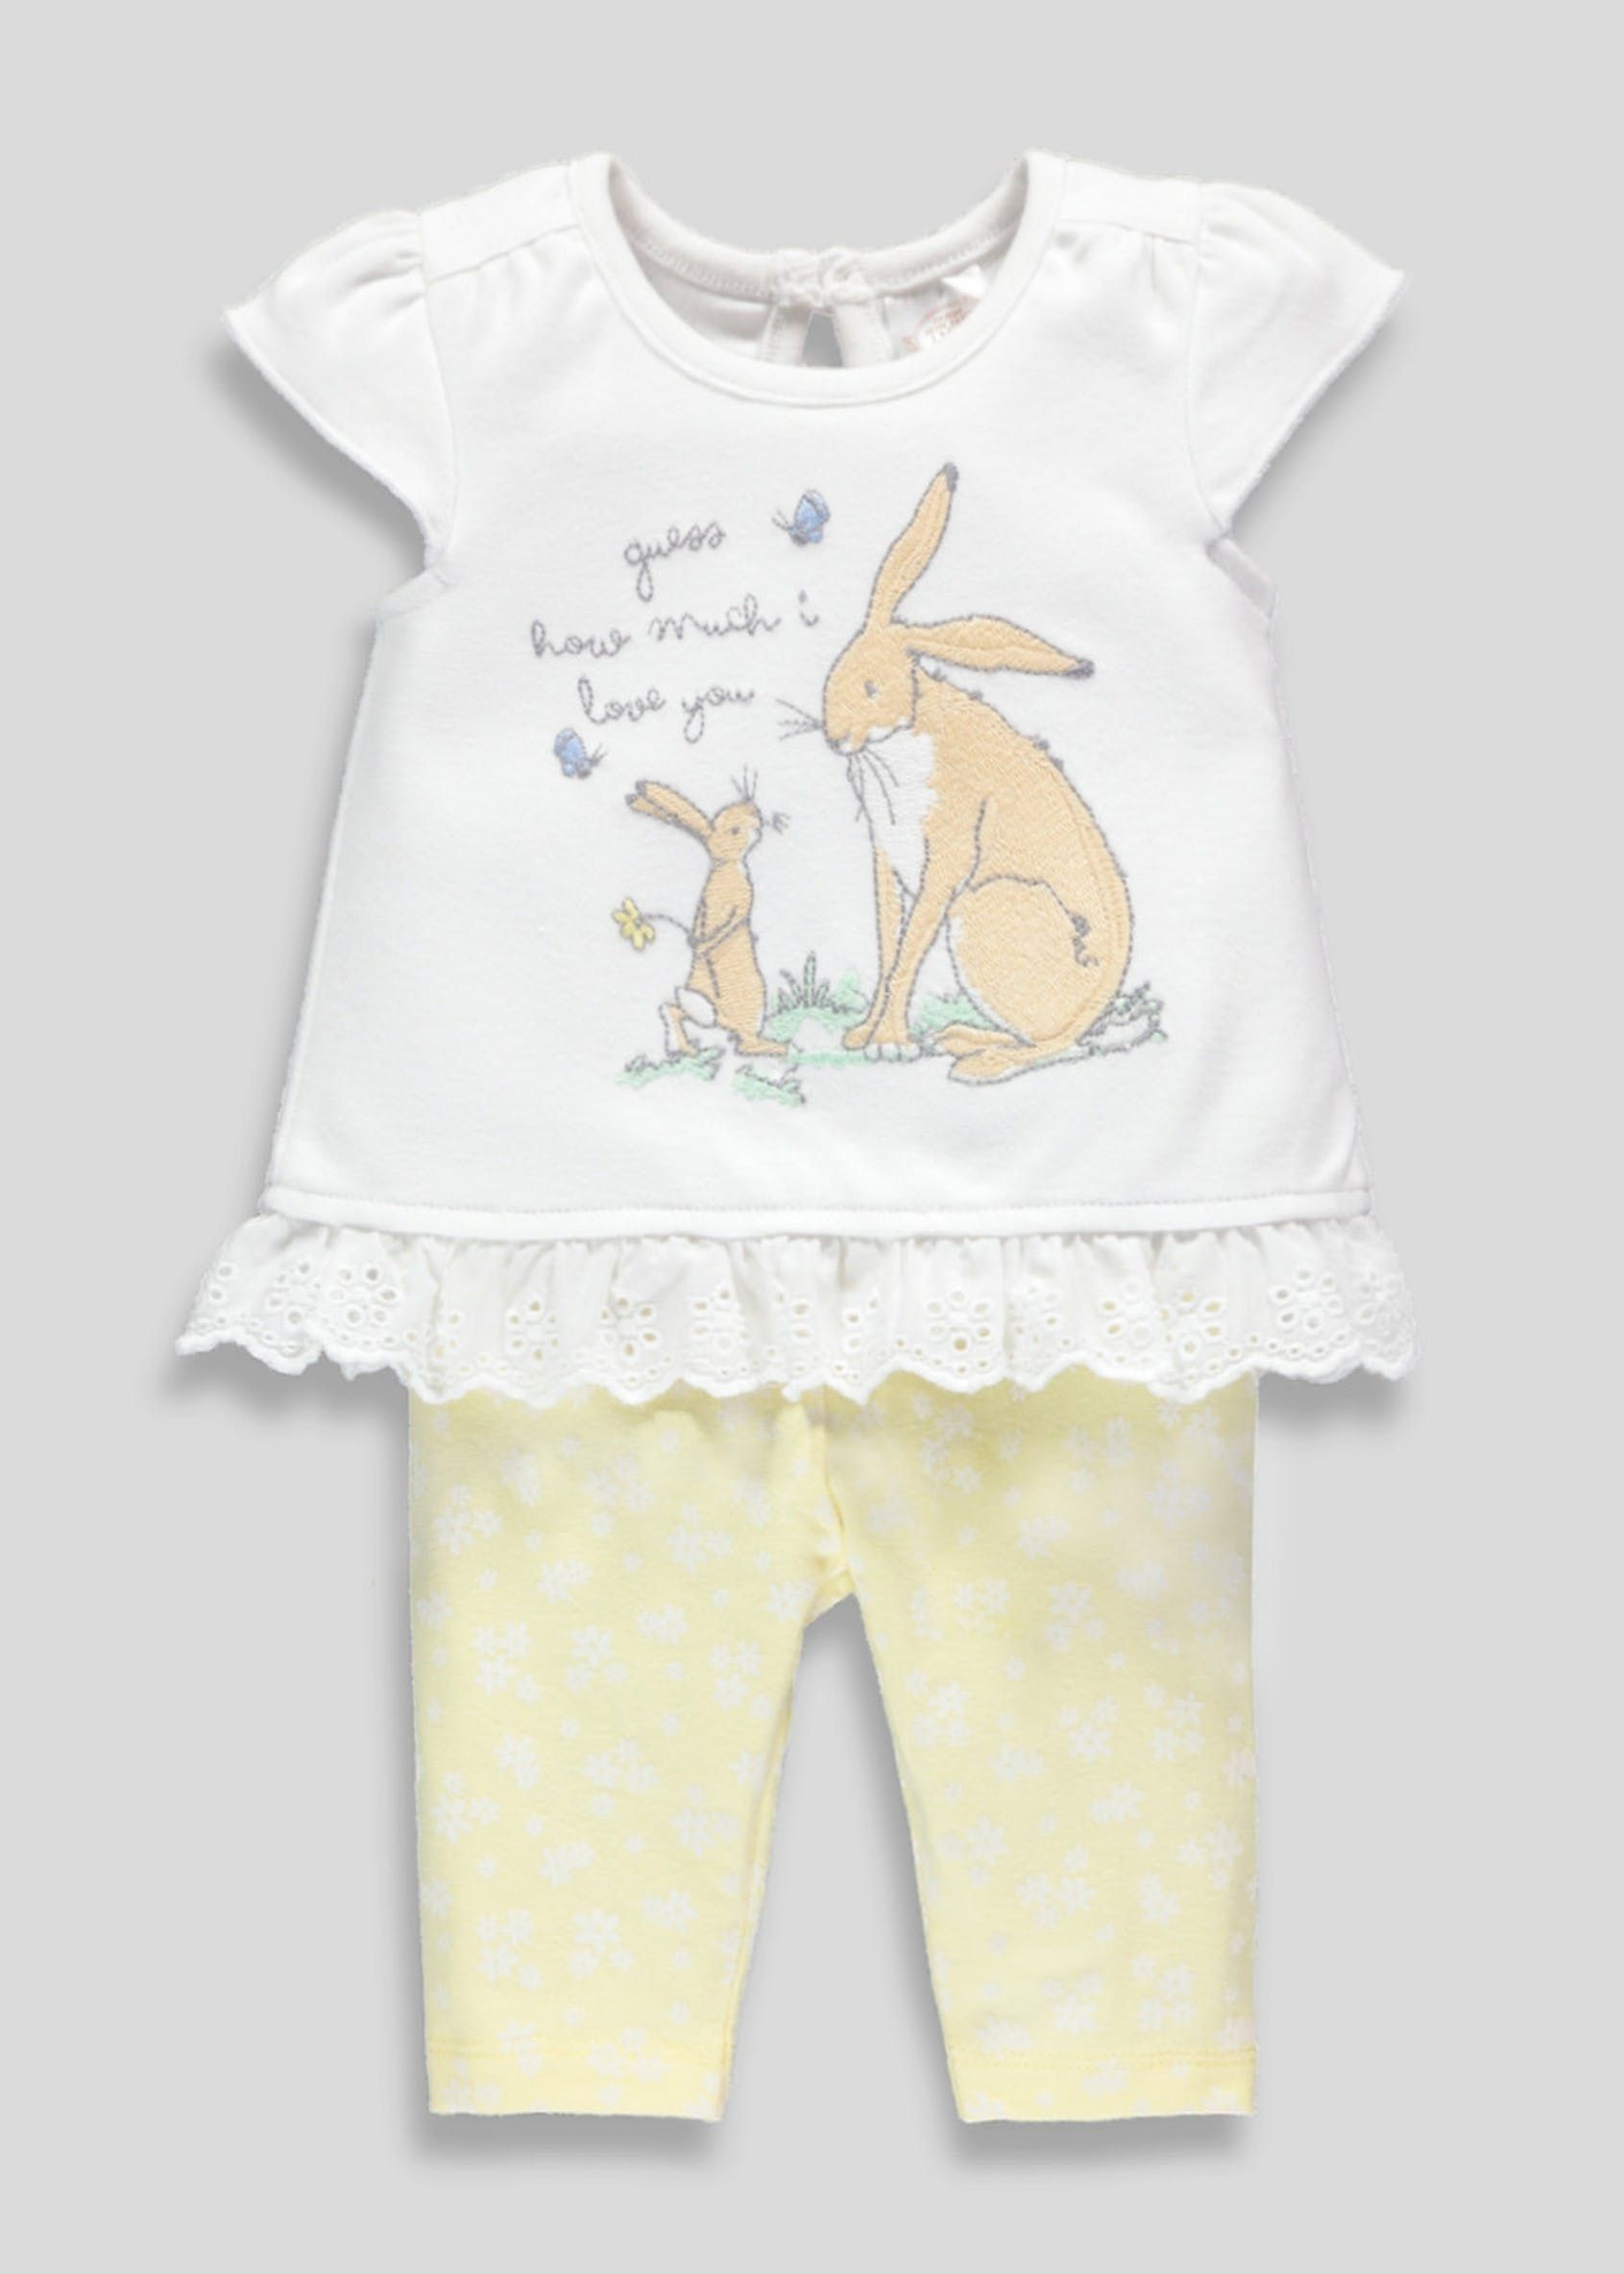 NEW Baby Neutral Guess How Much I Love You White Layette Clothing Book Gift Set